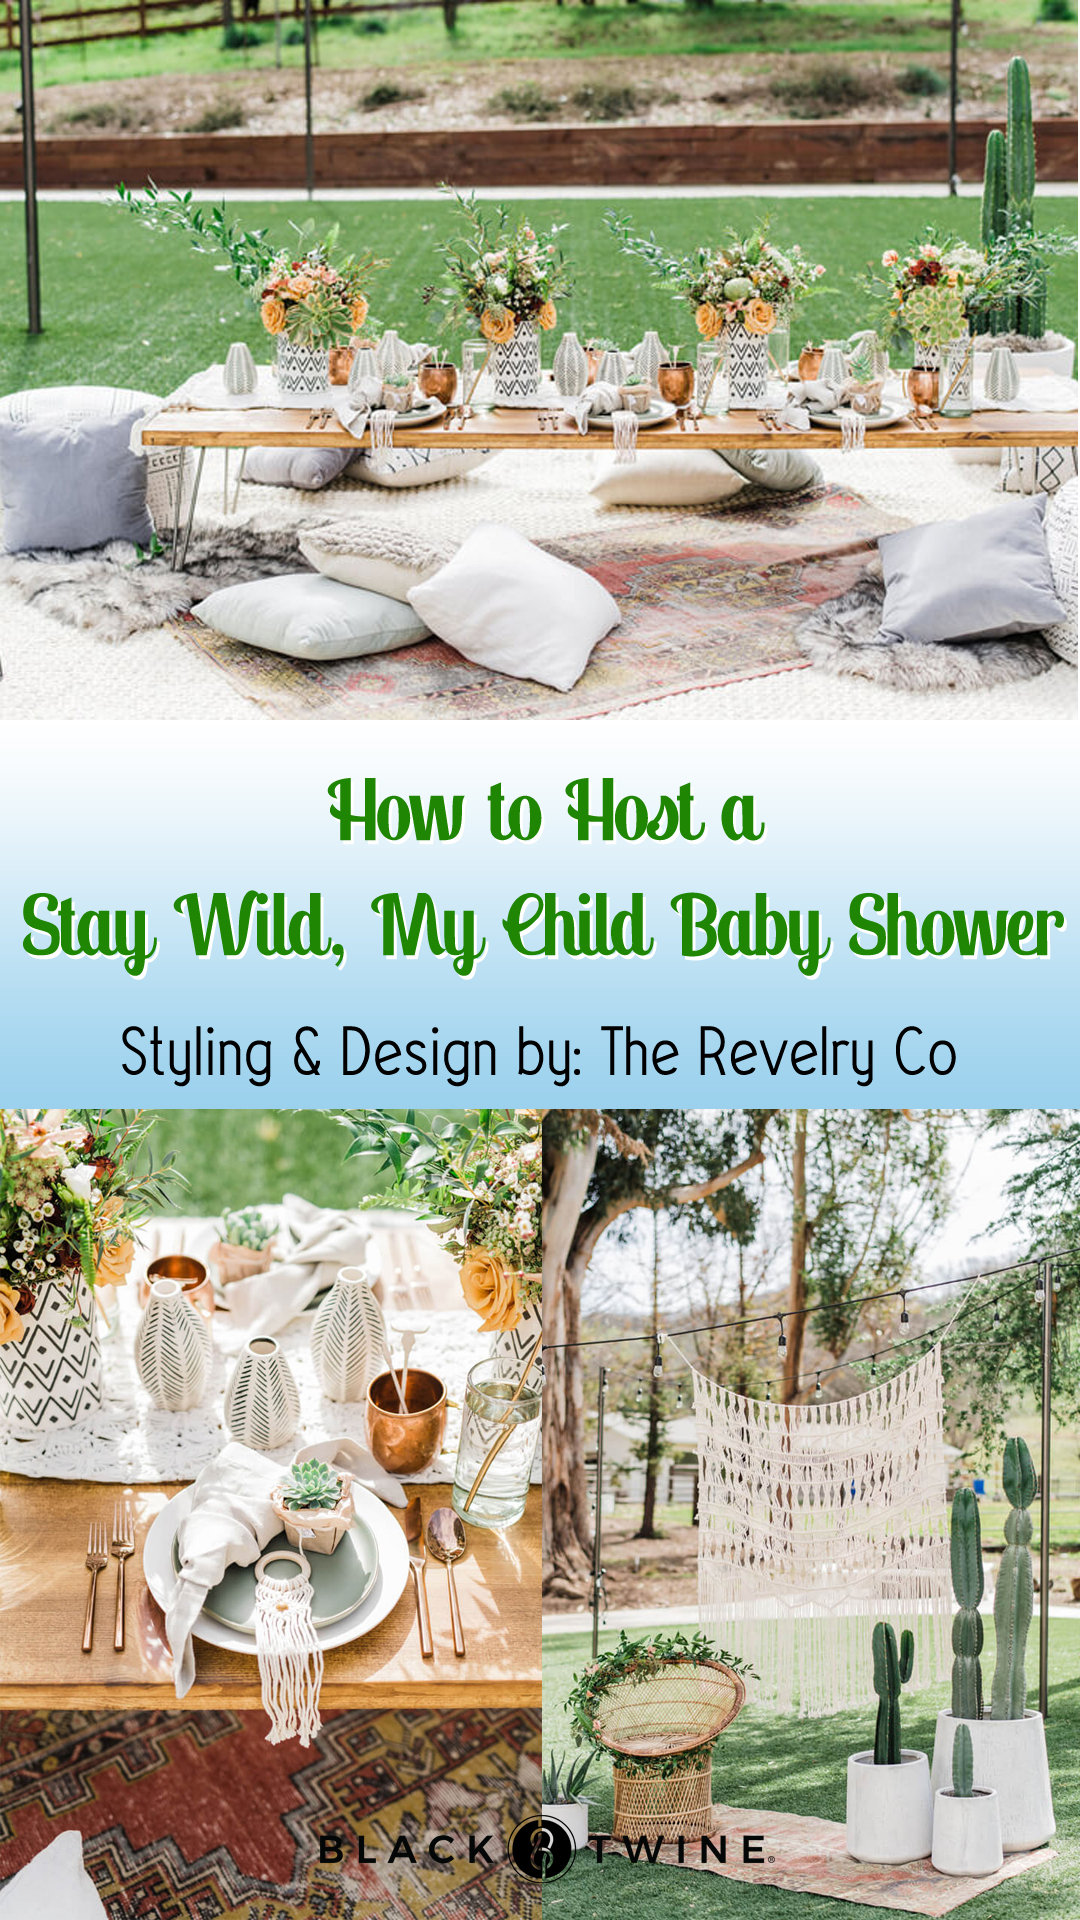 Collage Photo from Stay Wild, My Child Baby Shower by The Revelry Co | Black Twine